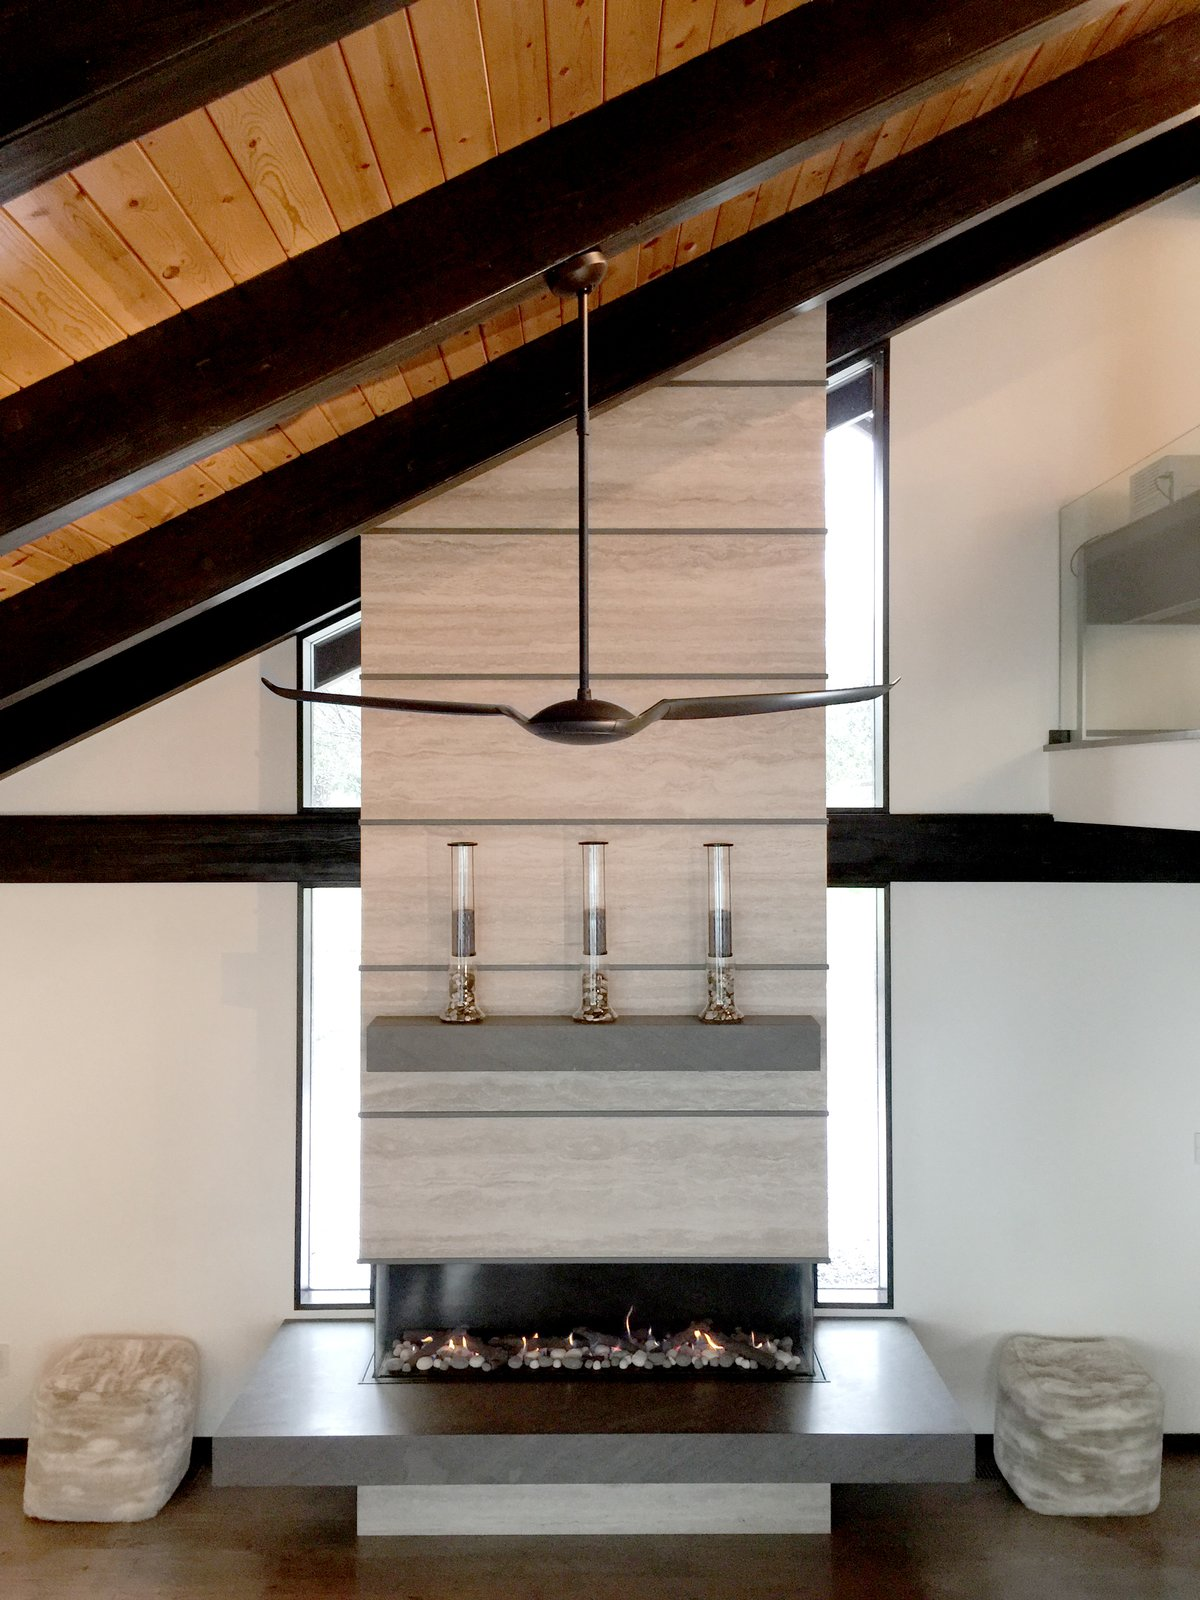 Photo 1 of 8 in Taking Flight: A Dose of Brazilian Design Lifts the Ceiling Fan to New Heights